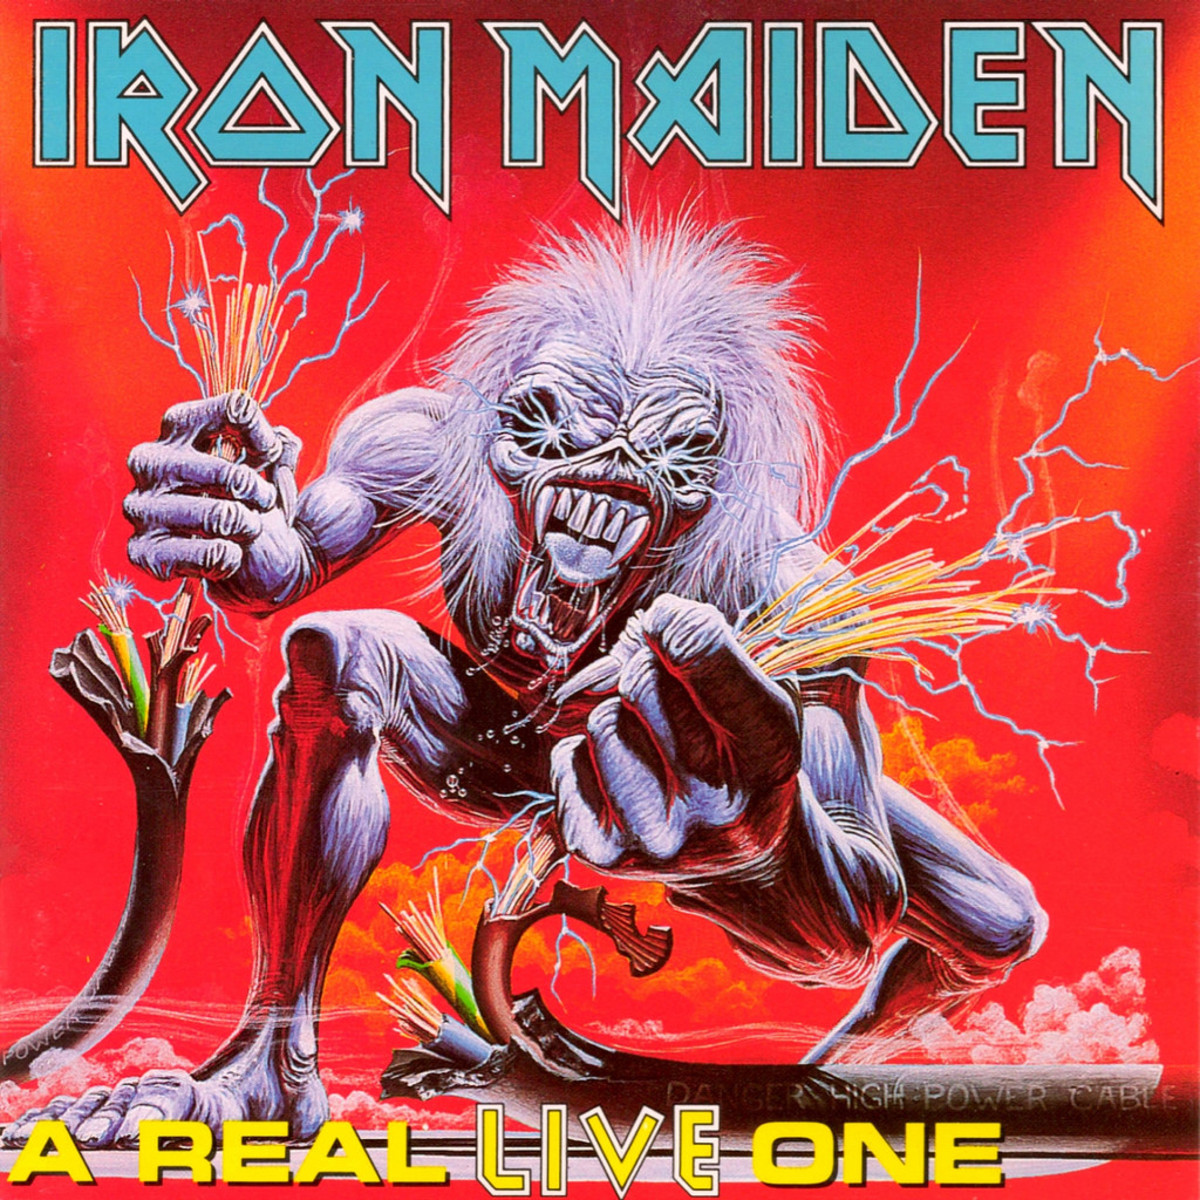 "Iron Maiden ""A Real Live One"" EMI 0777 7 81456 1 5 UK  12"" Vinyl Record (1993) Album Cover Art by Derek Riggs"